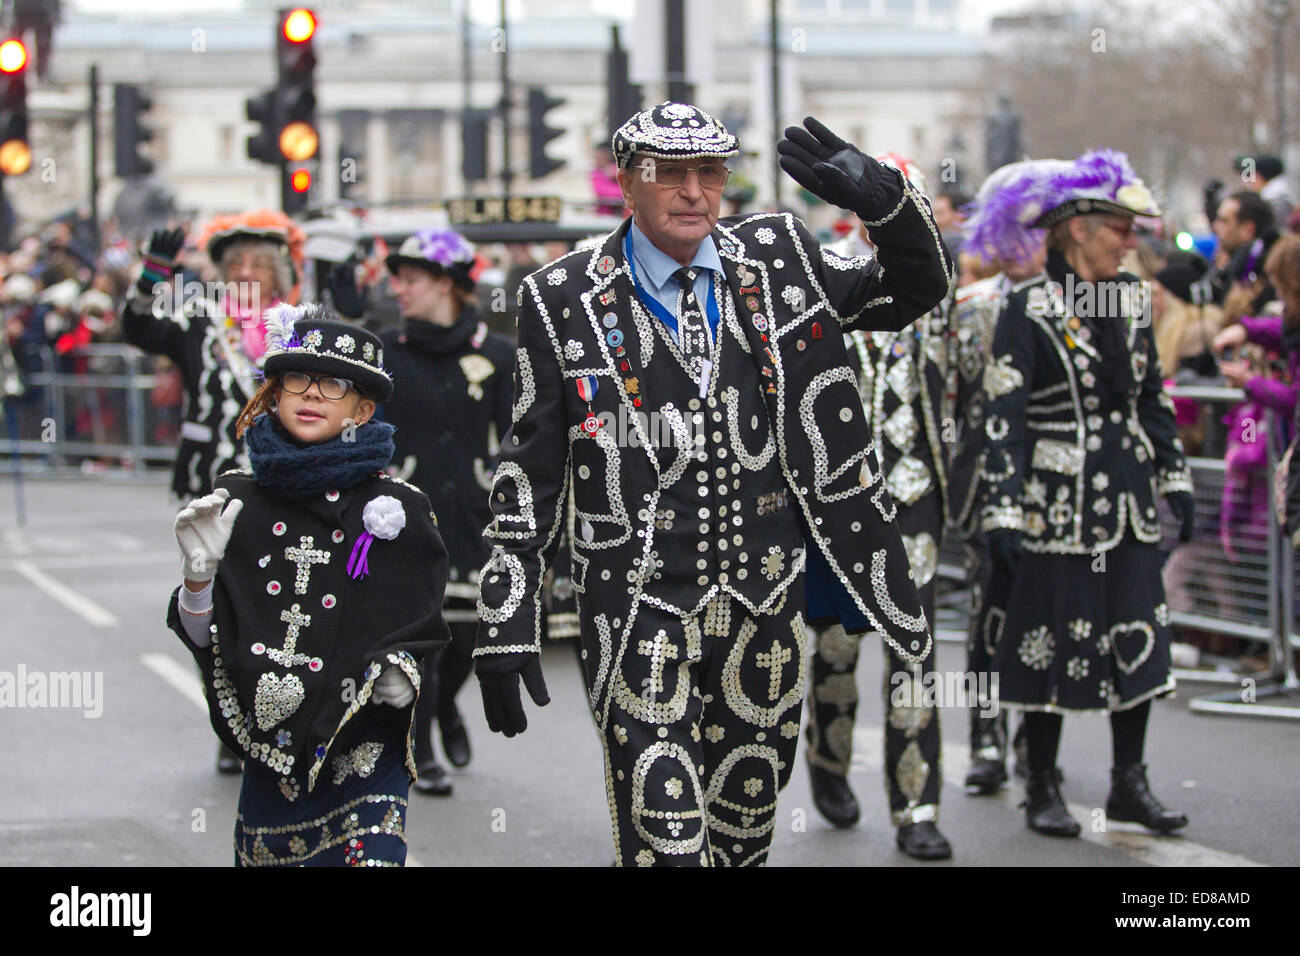 London, UK. 1st January, 2015. London's New Year's Day Parade 2015, London, England, UK London's Pearly - Stock Image